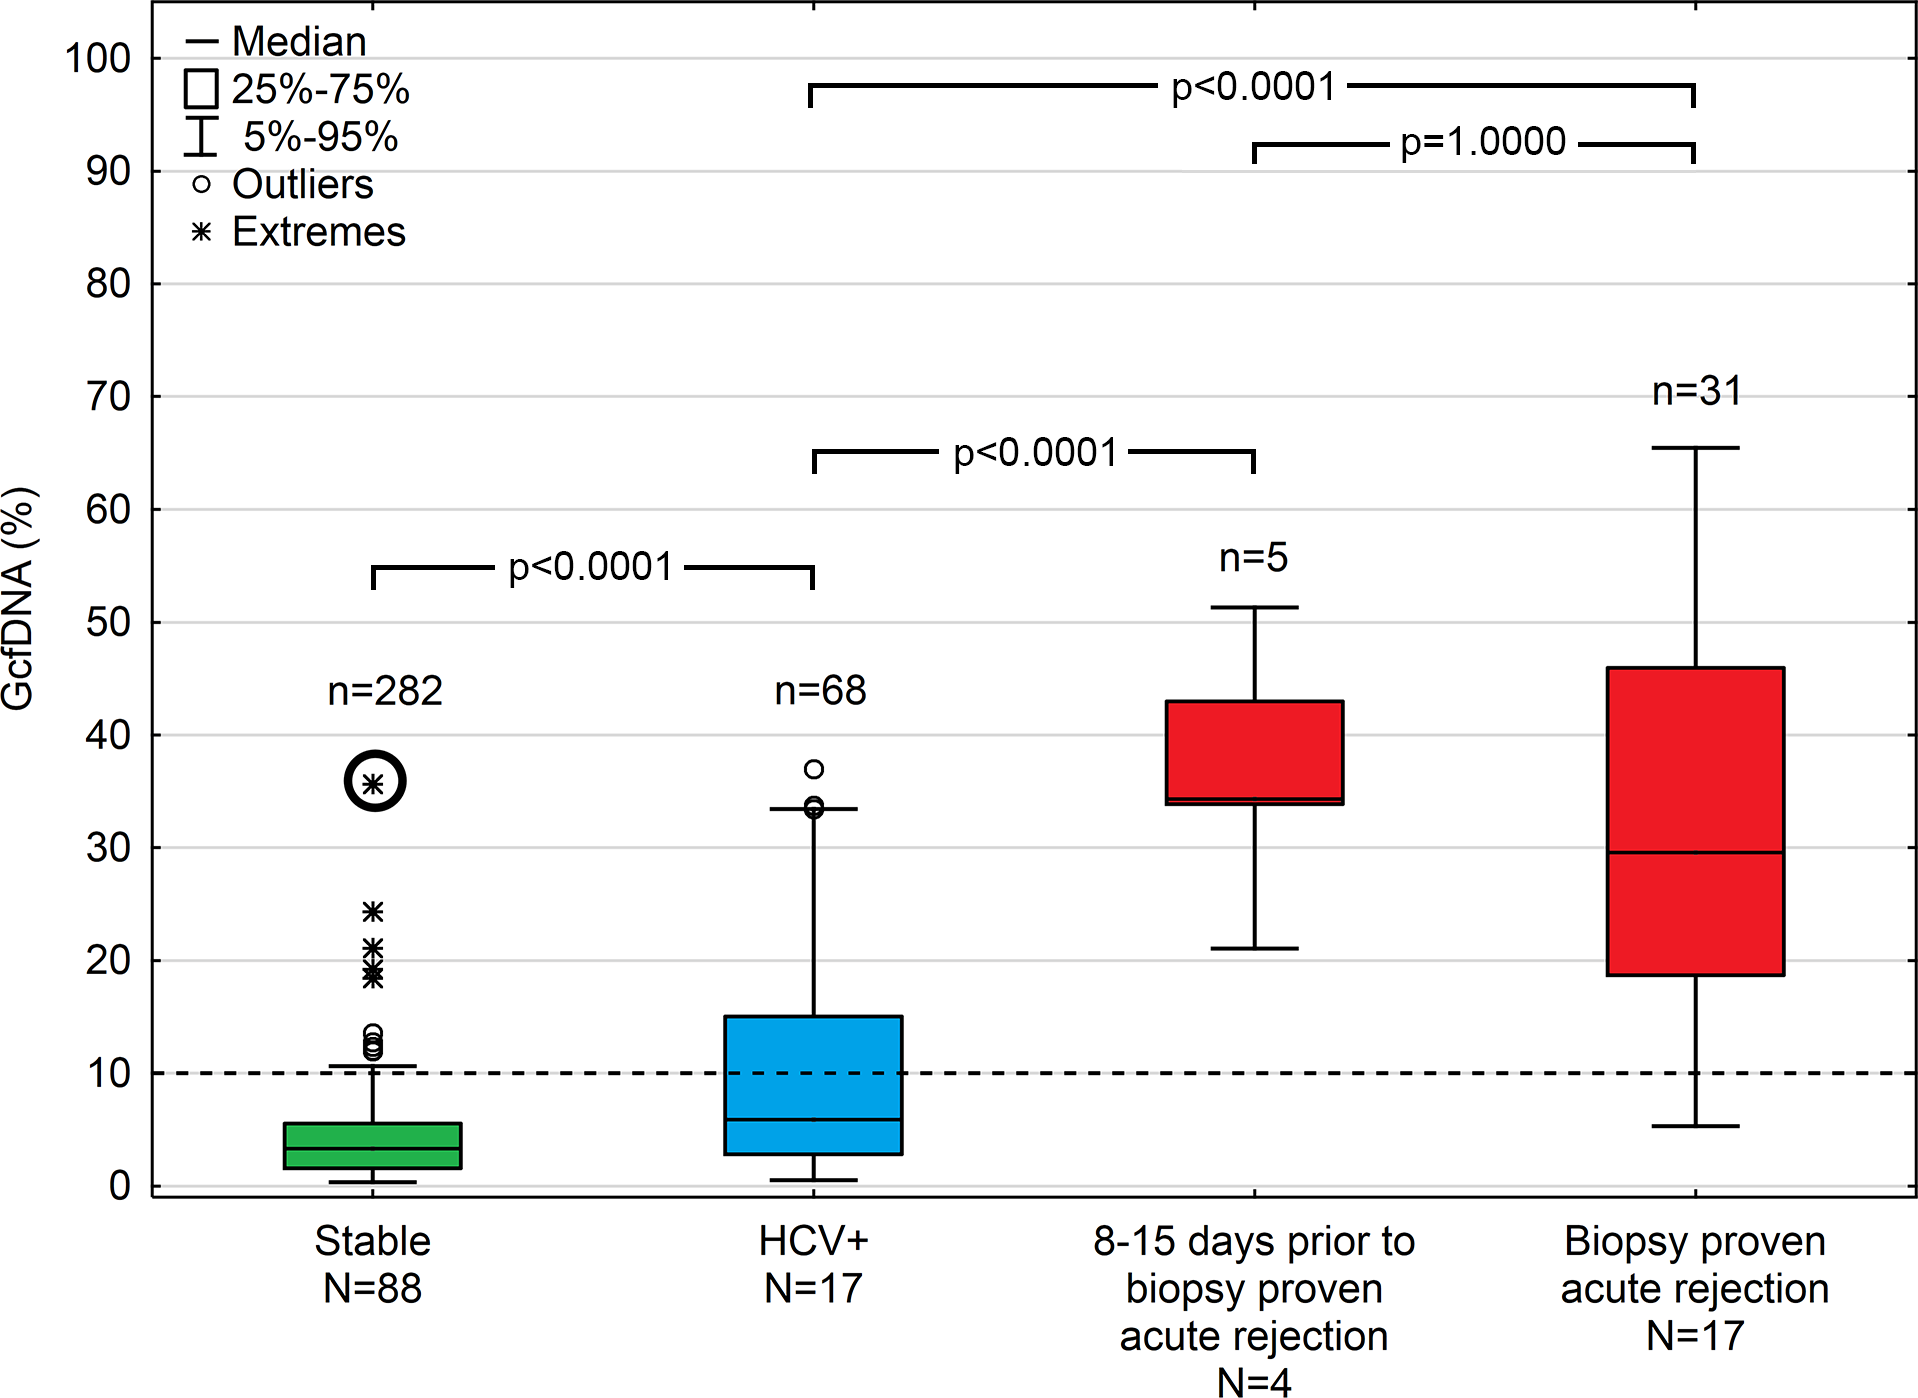 Plasma GcfDNA percentages during the first year after transplantation in stable patients and patients with either HCV or biopsy-proven acute rejection.